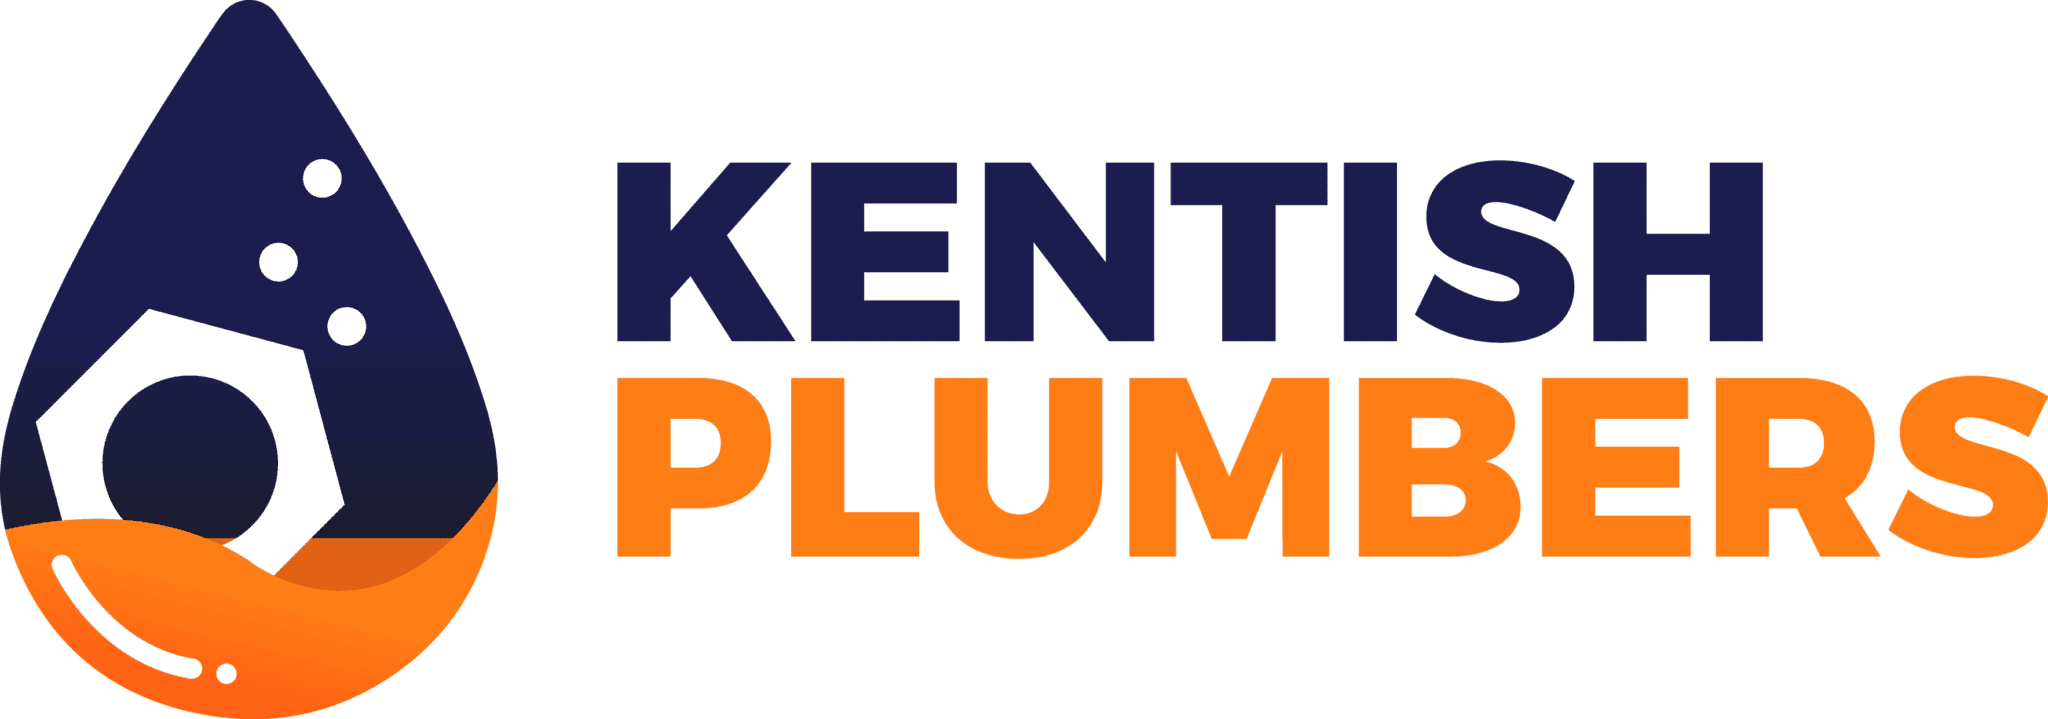 Kentish Plumbers Logo in Colour